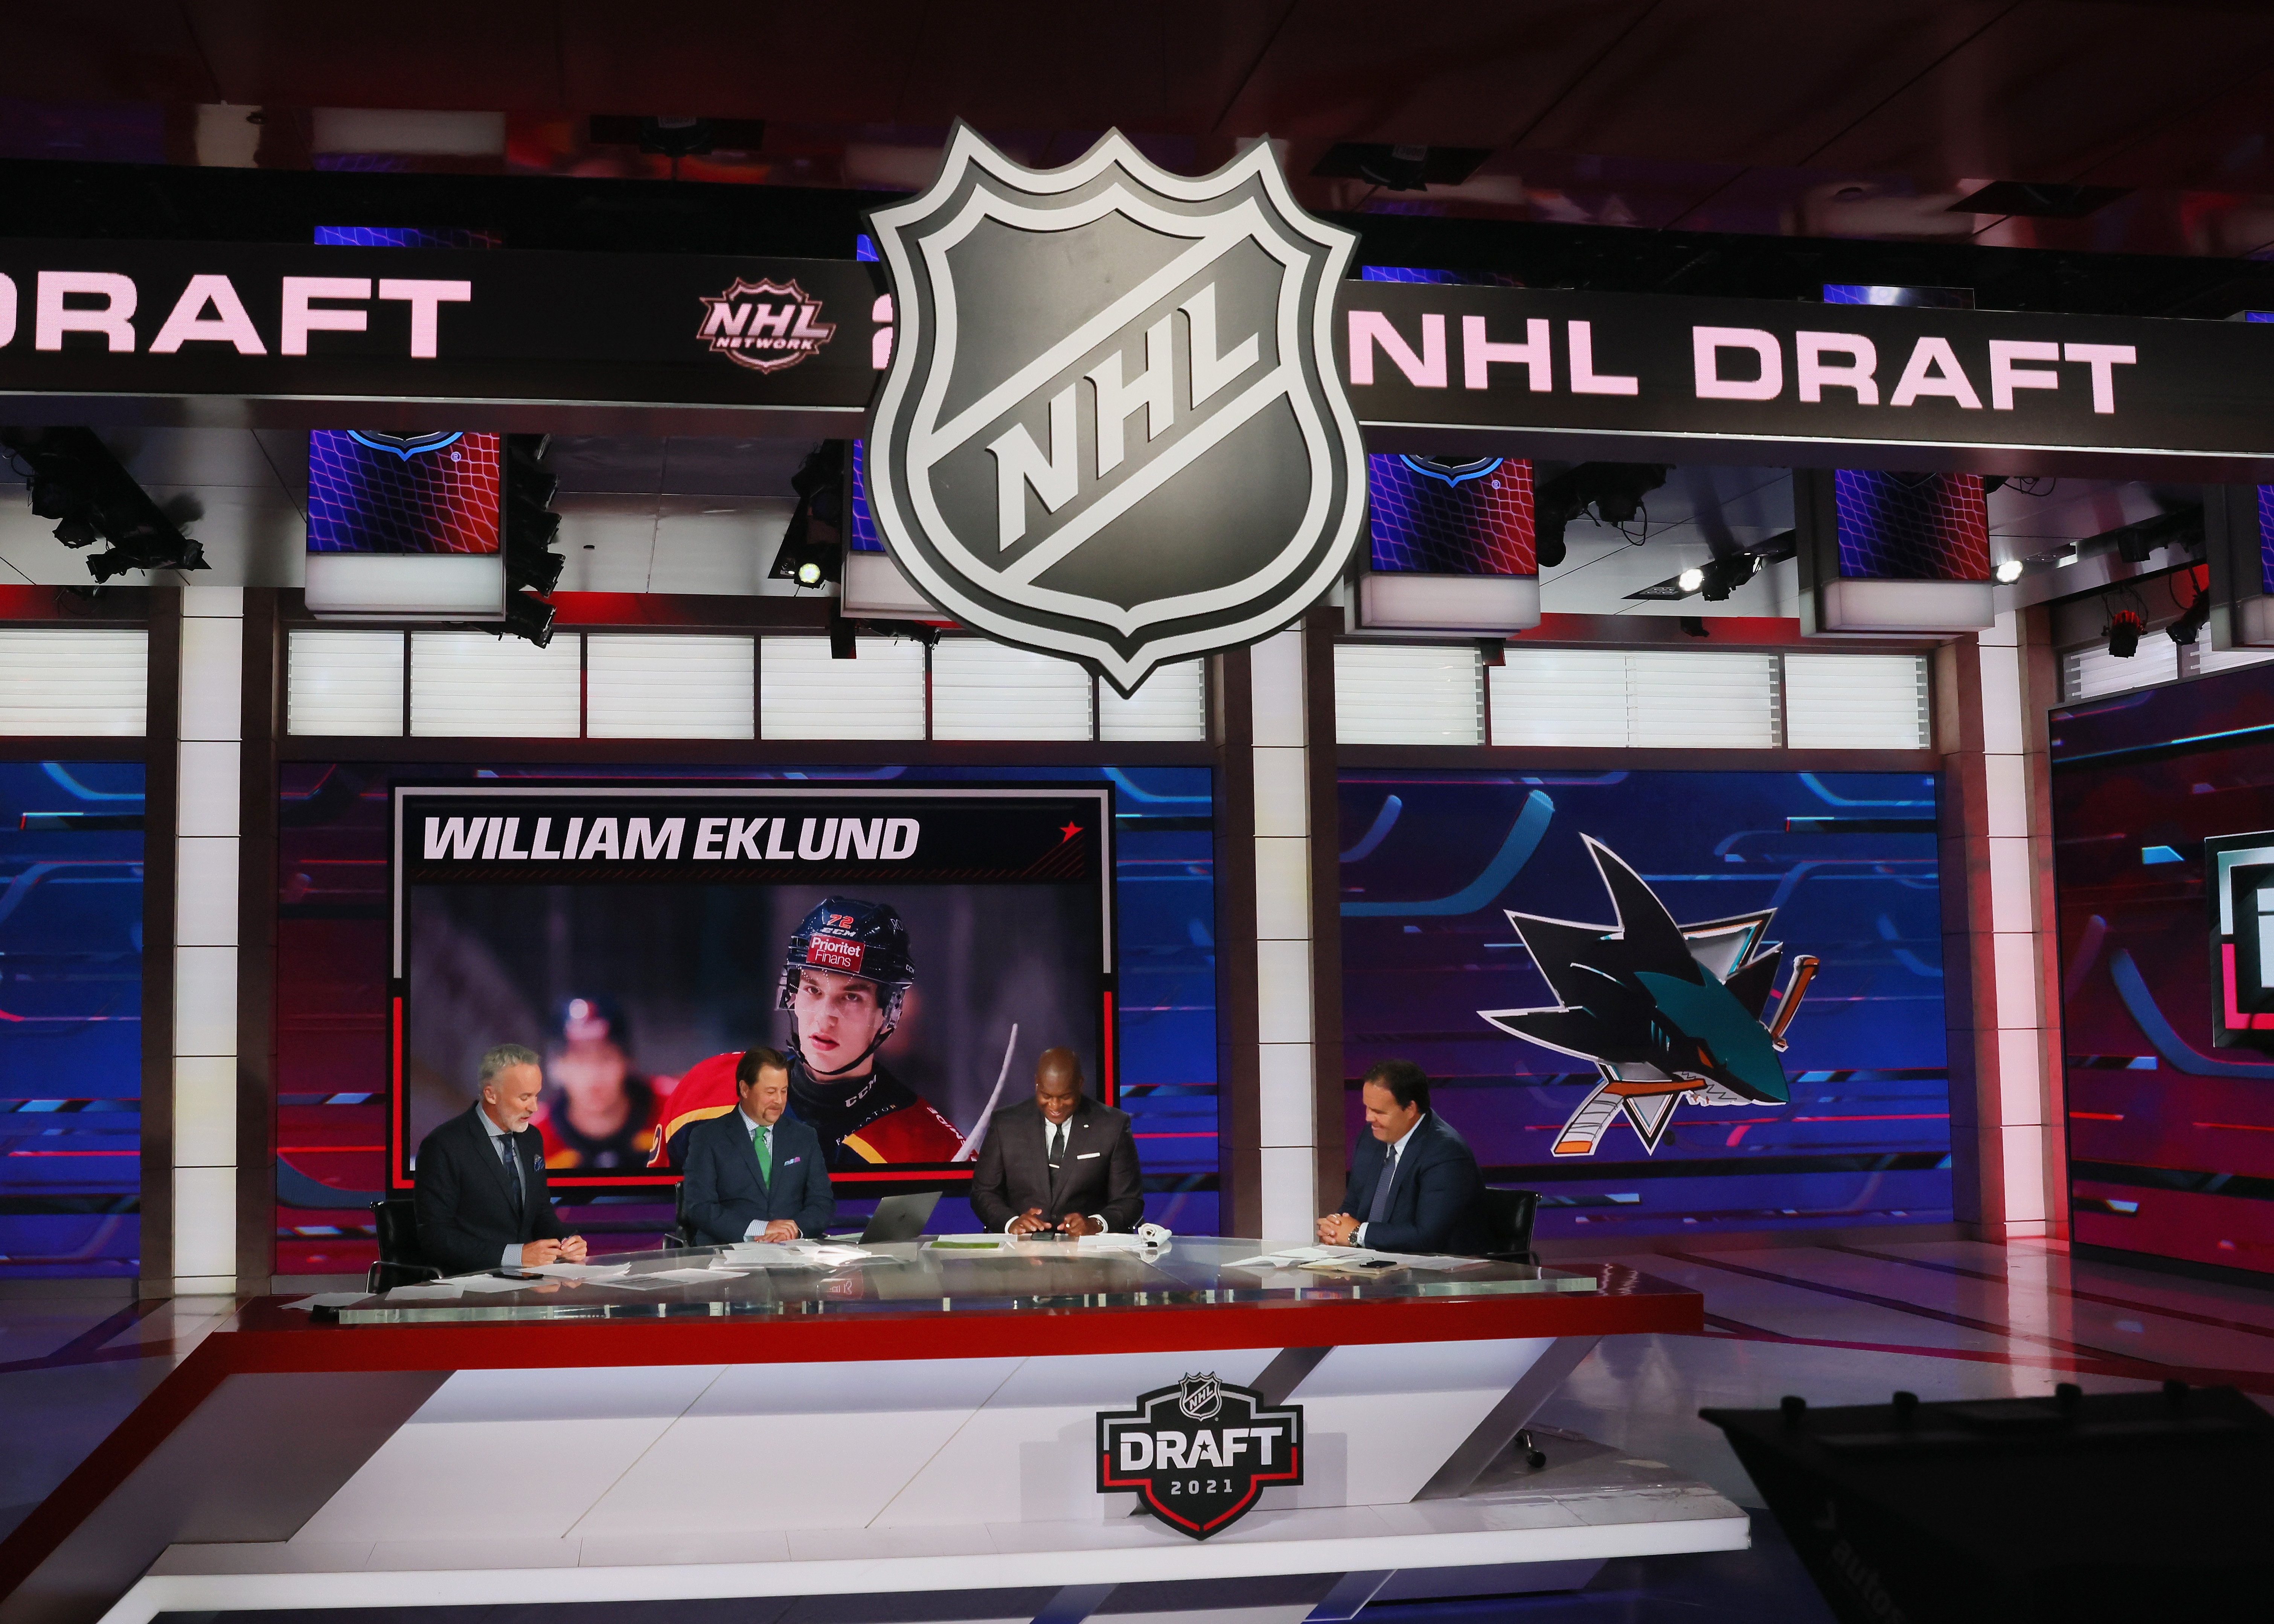 With the seventh pick in the 2021 NHL Entry Draft, the San Jose Sharks select William Eklund during the first round of the 2021 NHL Entry Draft at the NHL Network studios on July 23, 2021 in Secaucus, New Jersey.